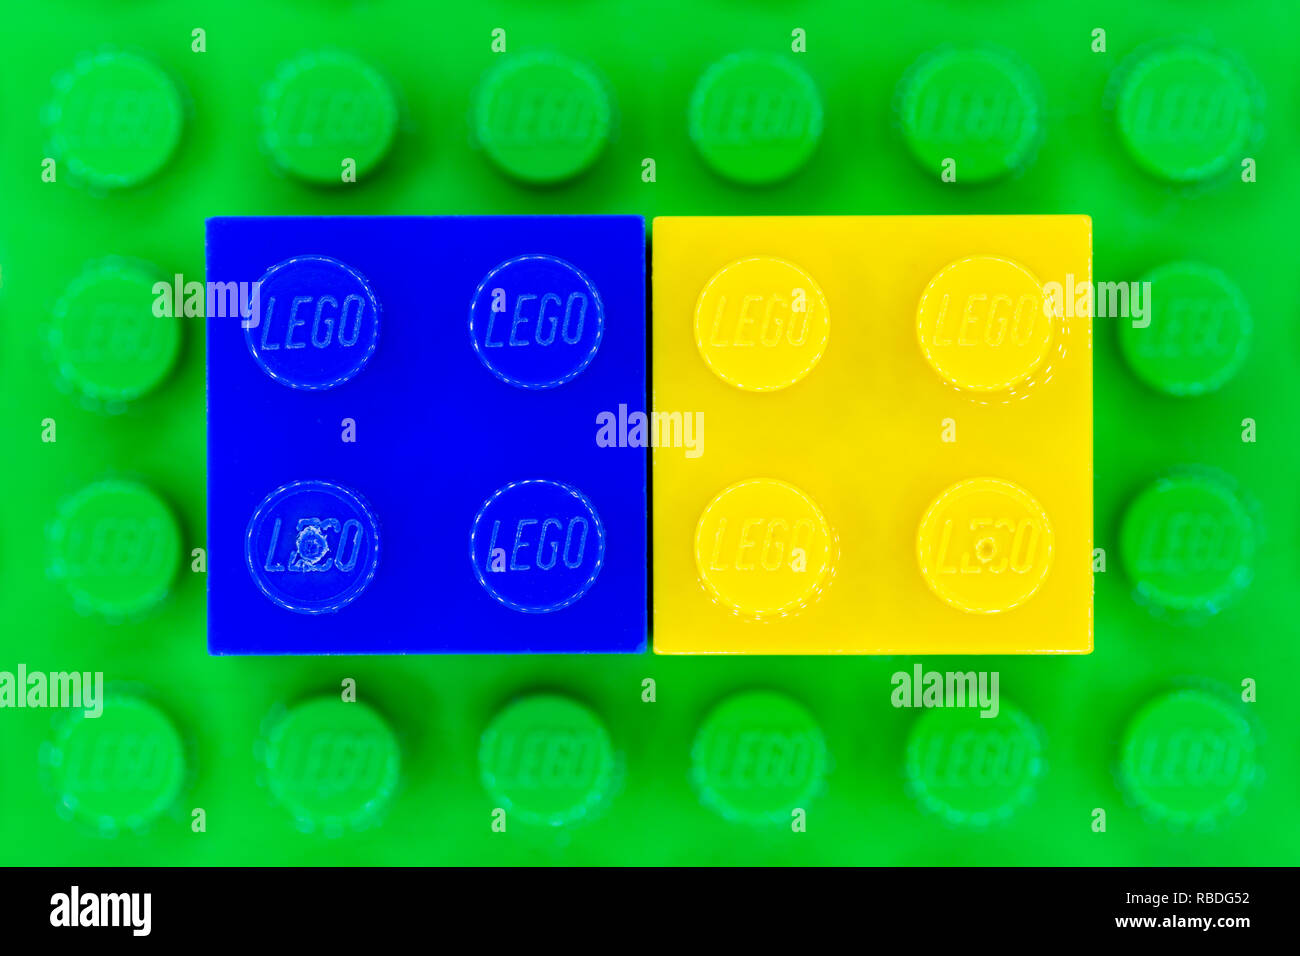 Blue and yellow 2x2 Lego bricks on a green Lego base - Stock Image